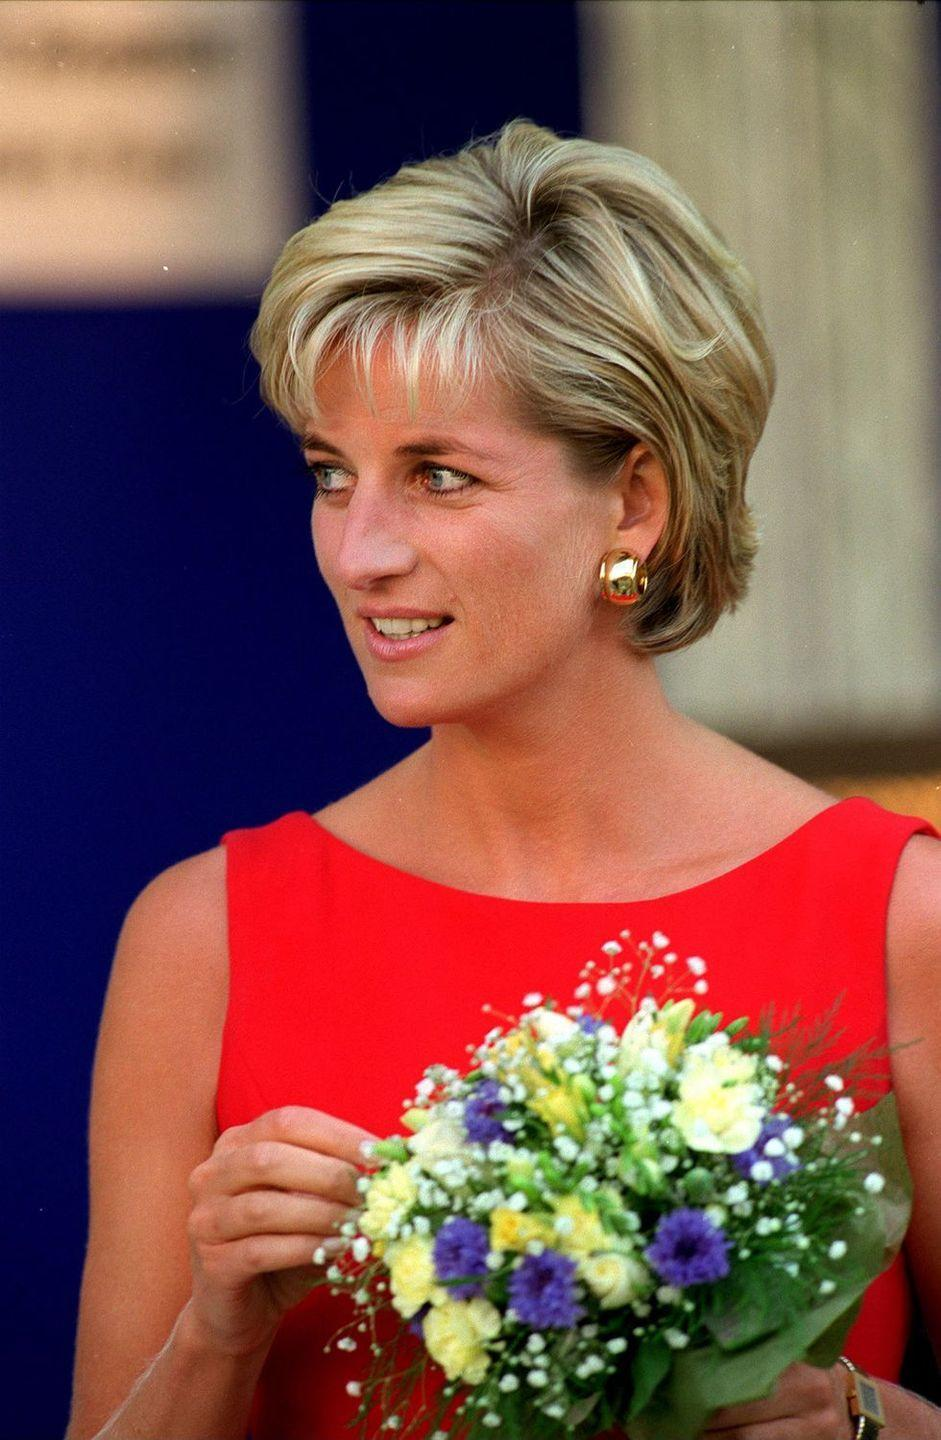 """<p>Princess Diana initially favoured bold blue pencils to rim her eyes, but Greenwell steered her toward softer beige and brown <span class=""""redactor-unlink"""">eyeliners</span> after meeting her at a Vogue photoshoot in 1991. """"The thing that I changed most about Princess Diana's look was actually moving away from the blue liner, which was very ageing for her,"""" <a href=""""http://www.dailymail.co.uk/femail/article-4243454/Diana-s-make-artist-Mary-Greenwell-recreates-look.html"""" rel=""""nofollow noopener"""" target=""""_blank"""" data-ylk=""""slk:Greenwell"""" class=""""link rapid-noclick-resp"""">Greenwell</a> said. </p>"""